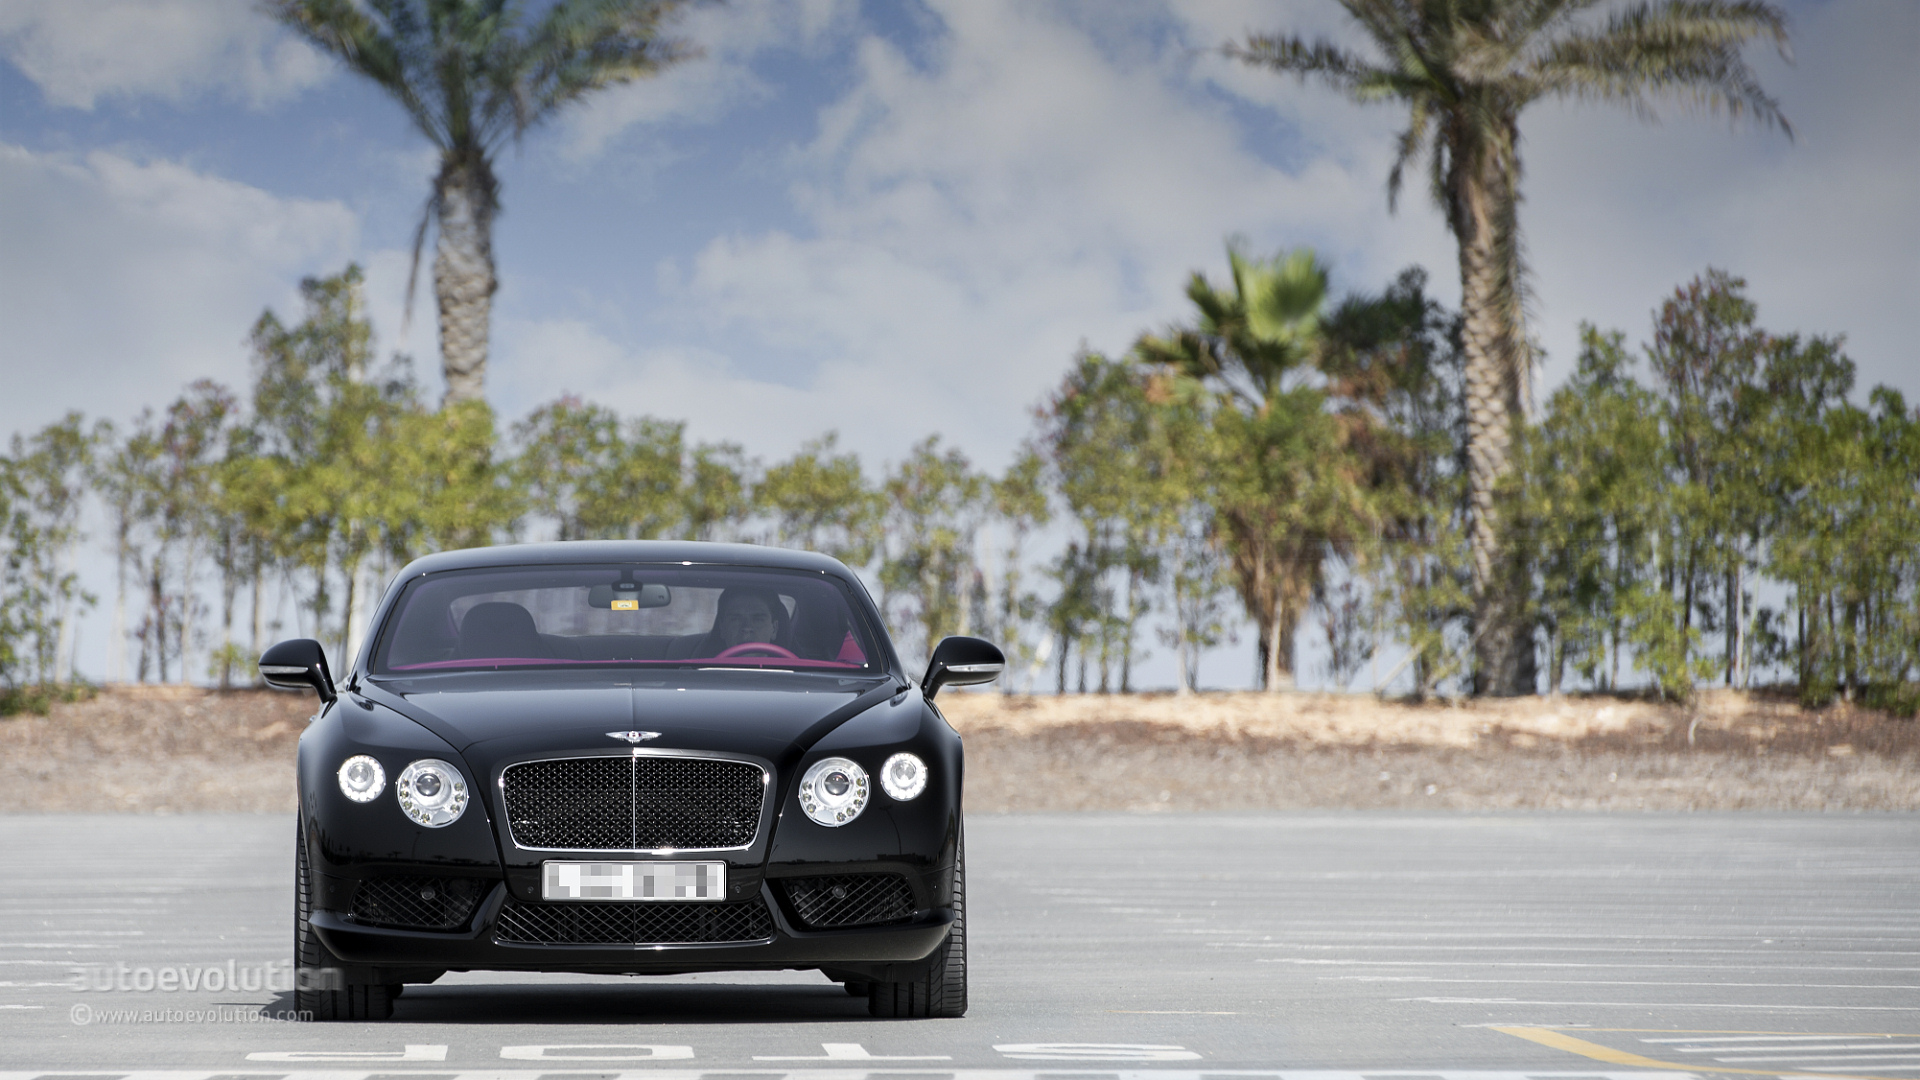 Bentley continental gt w12 review autoevolution - Bentley Continental Gt W12 Review Autoevolution 17